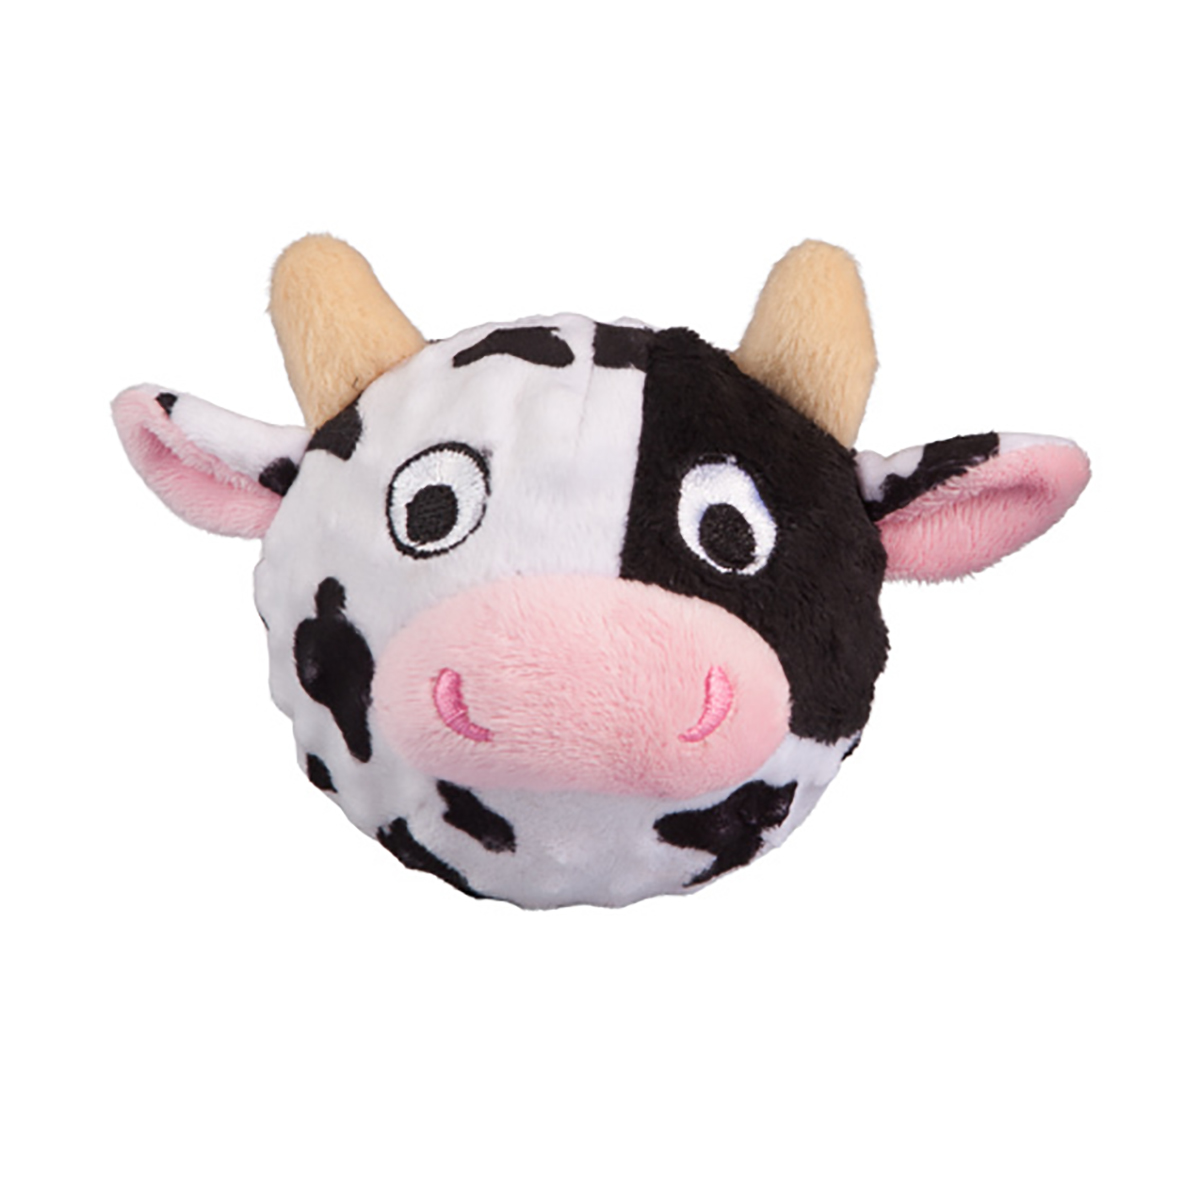 Small Toy Cows : Country critter faballs dog toy cow with same day